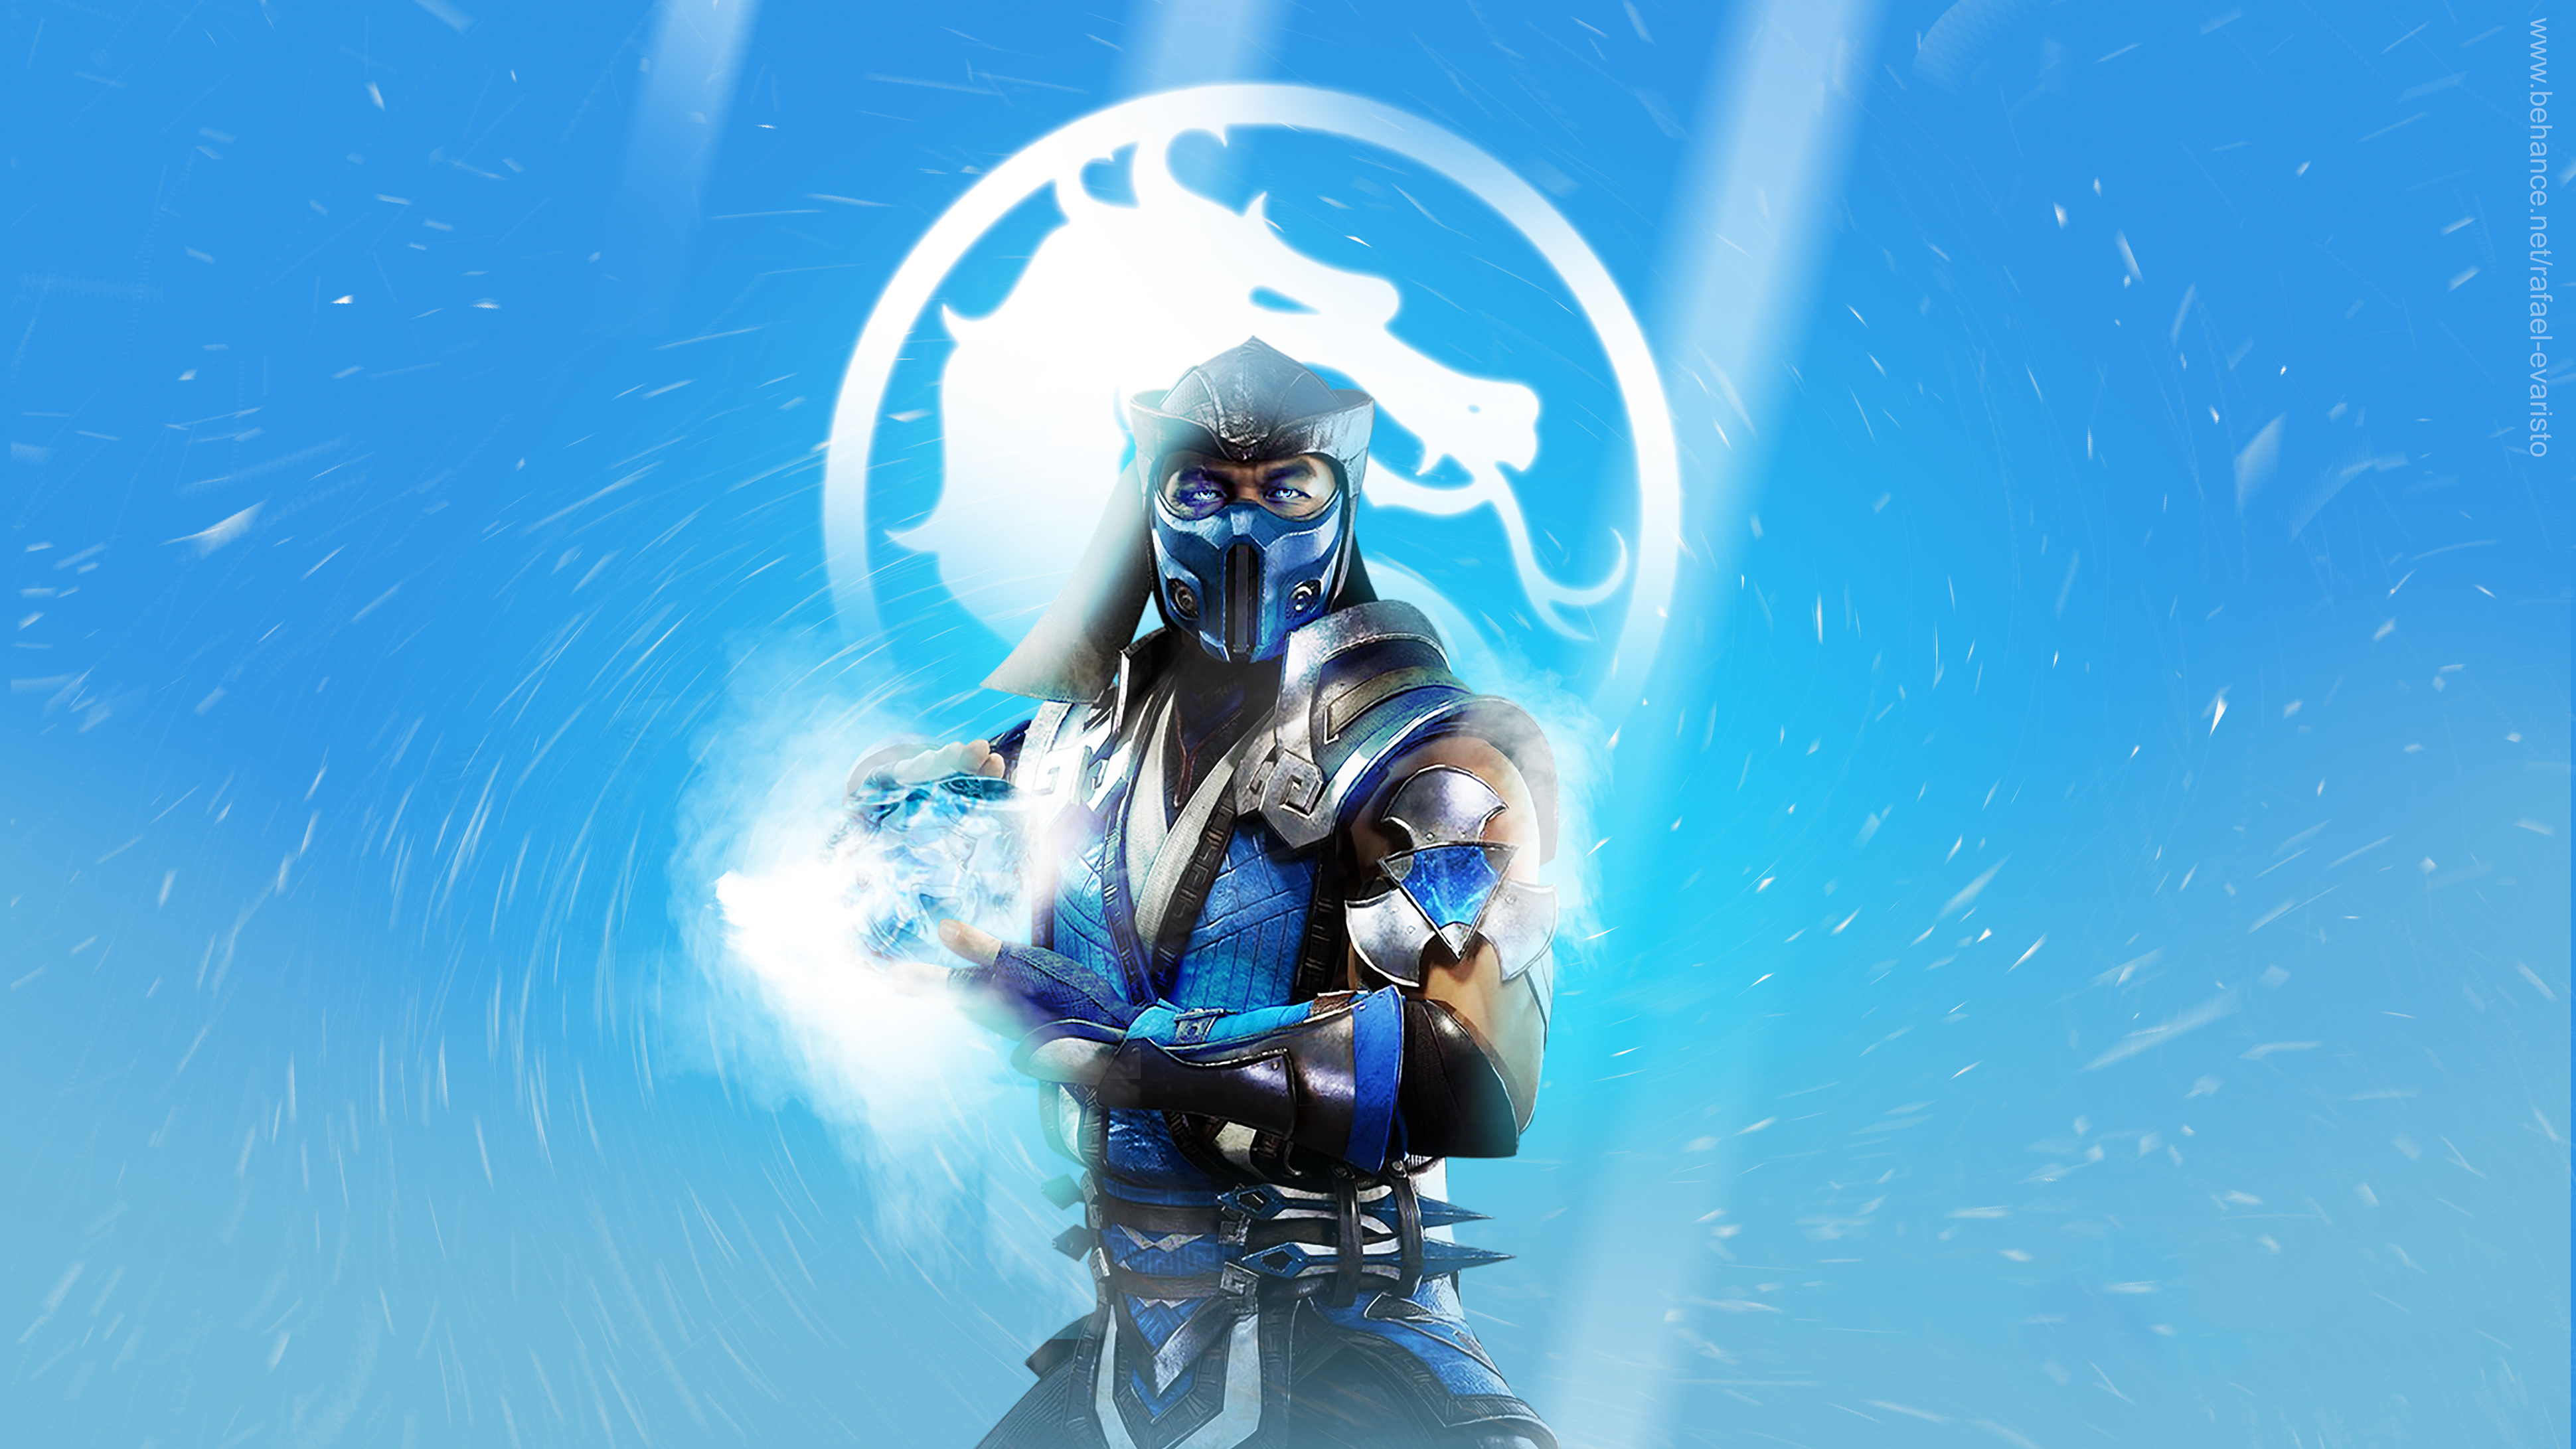 Sub Zero Mortal Kombat 11 Wallpaper Hd Games 4k Wallpapers